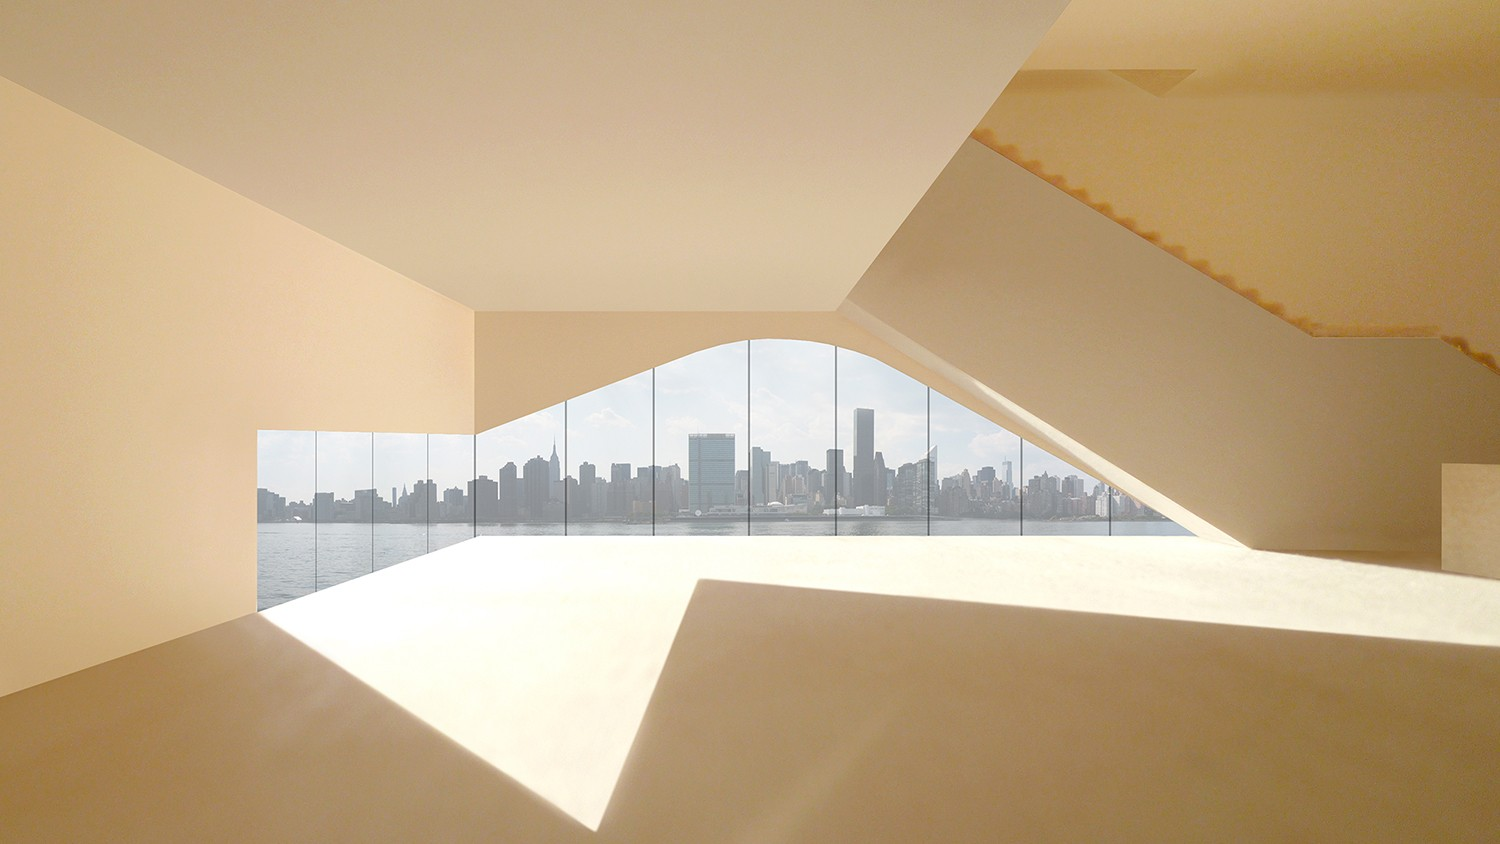 https://stevenholl.sfo2.digitaloceanspaces.com/uploads/projects/project-images/StevenHollArchitects_HPL_24_8_P1000346_WV.jpg